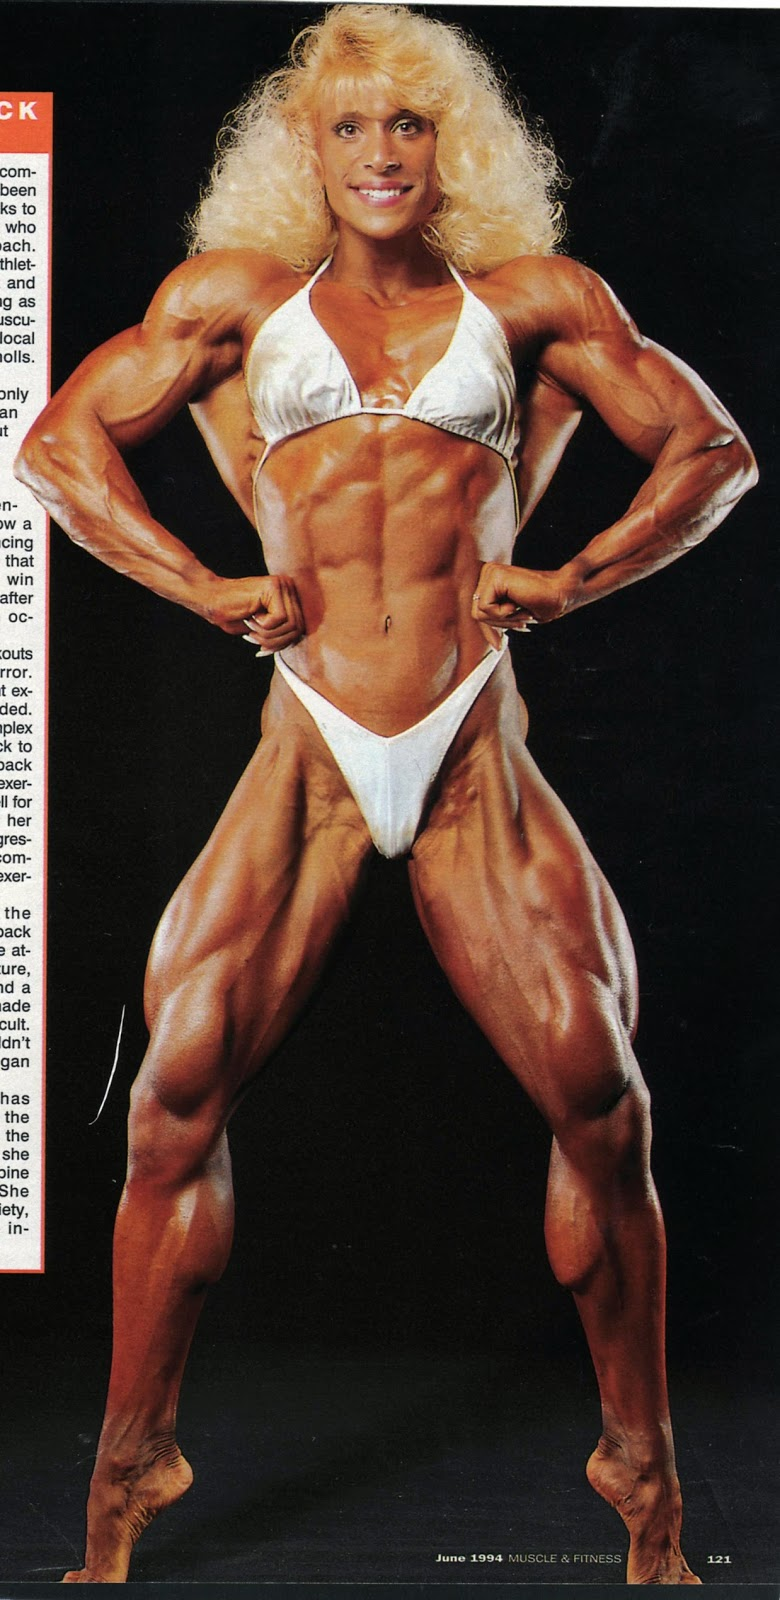 Kim Chizevsky is an American professional female bodybuilding